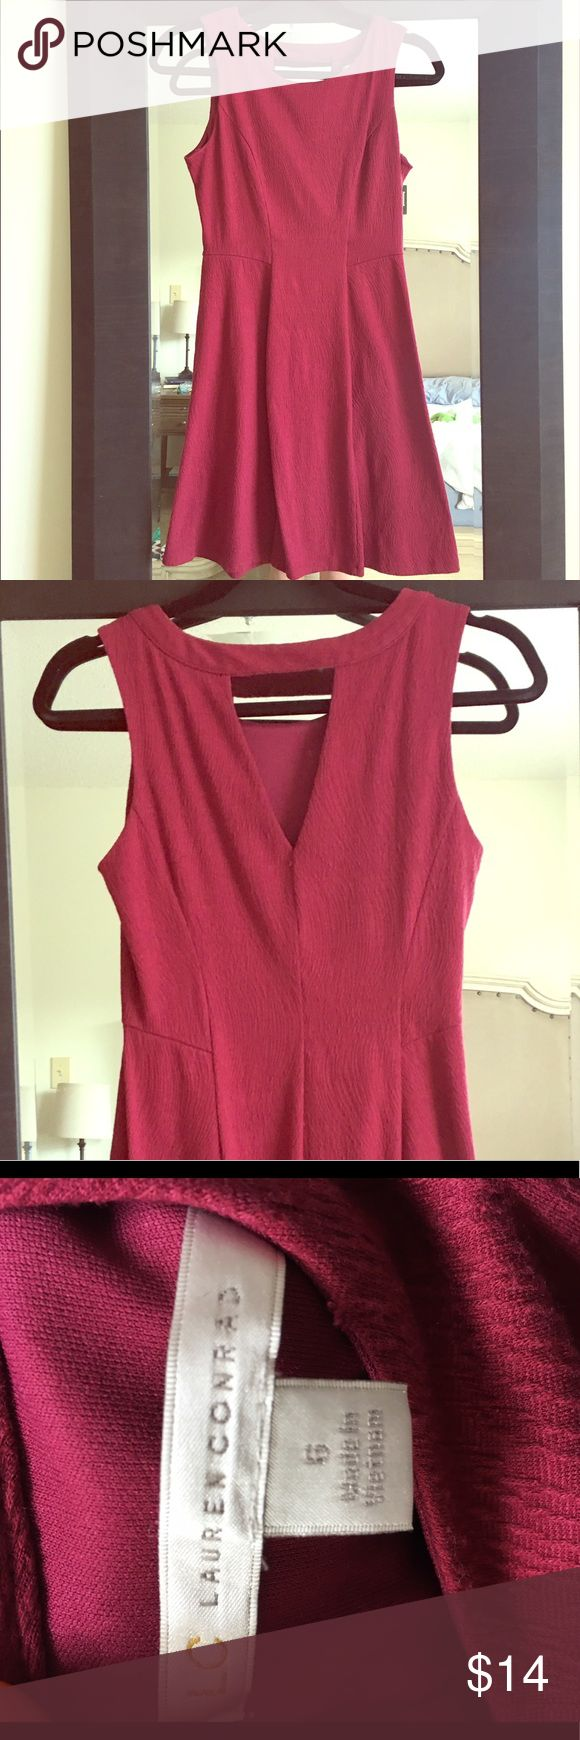 LC Lauren Conrad Garnet Dress Textured cotton garnet dress with keyhole back. Stretchy fabric. Size 6 - fits like a 4-6. LC Lauren Conrad Dresses Mini